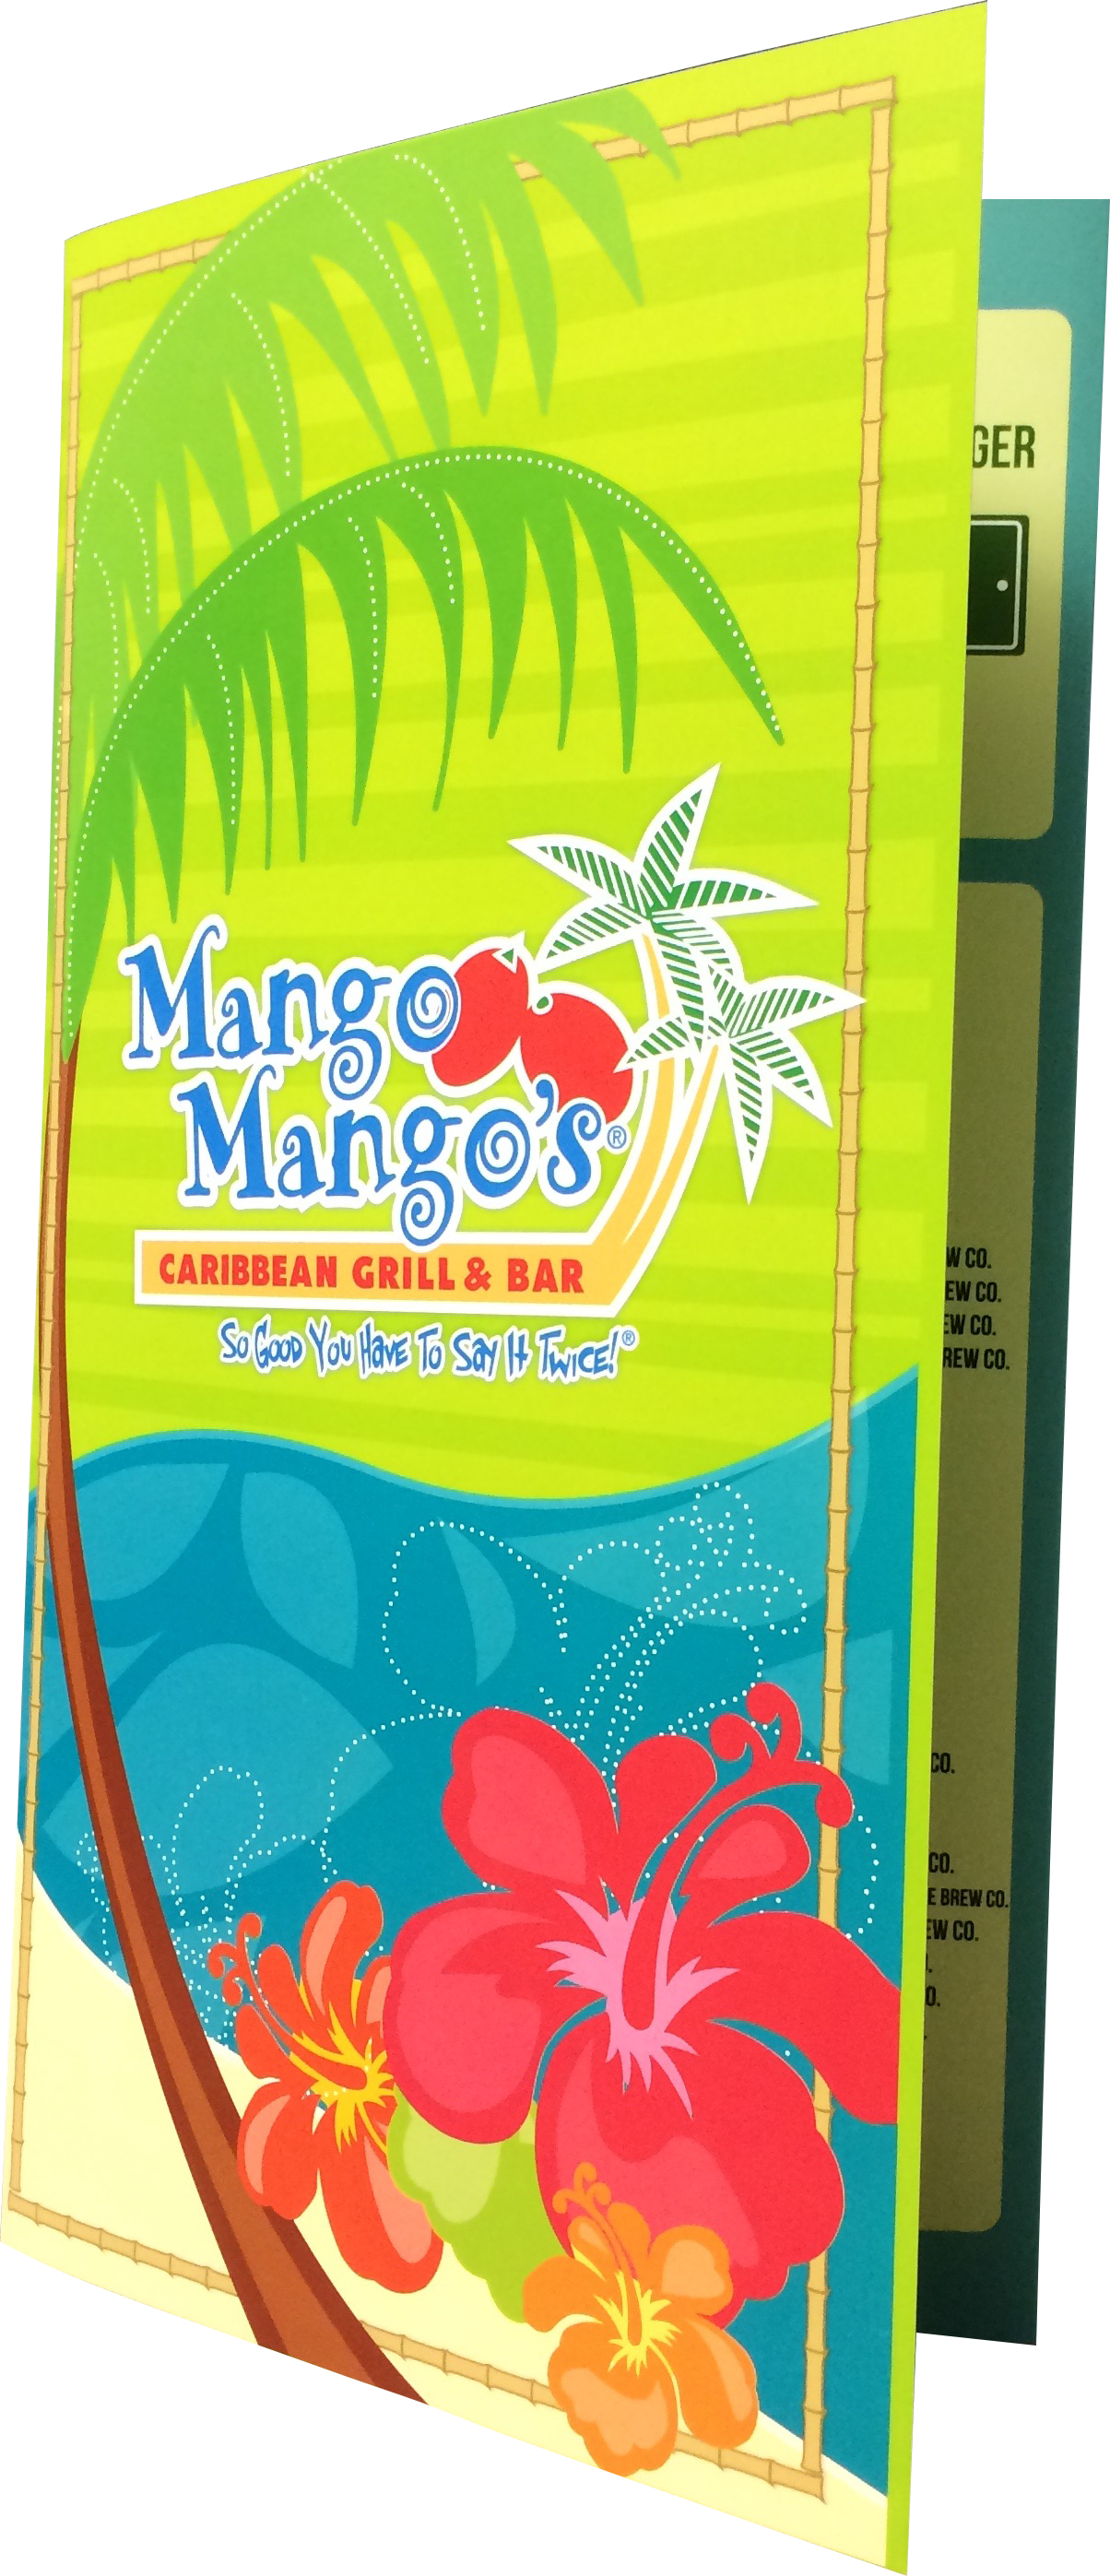 Mango Mangos Synthetic menu